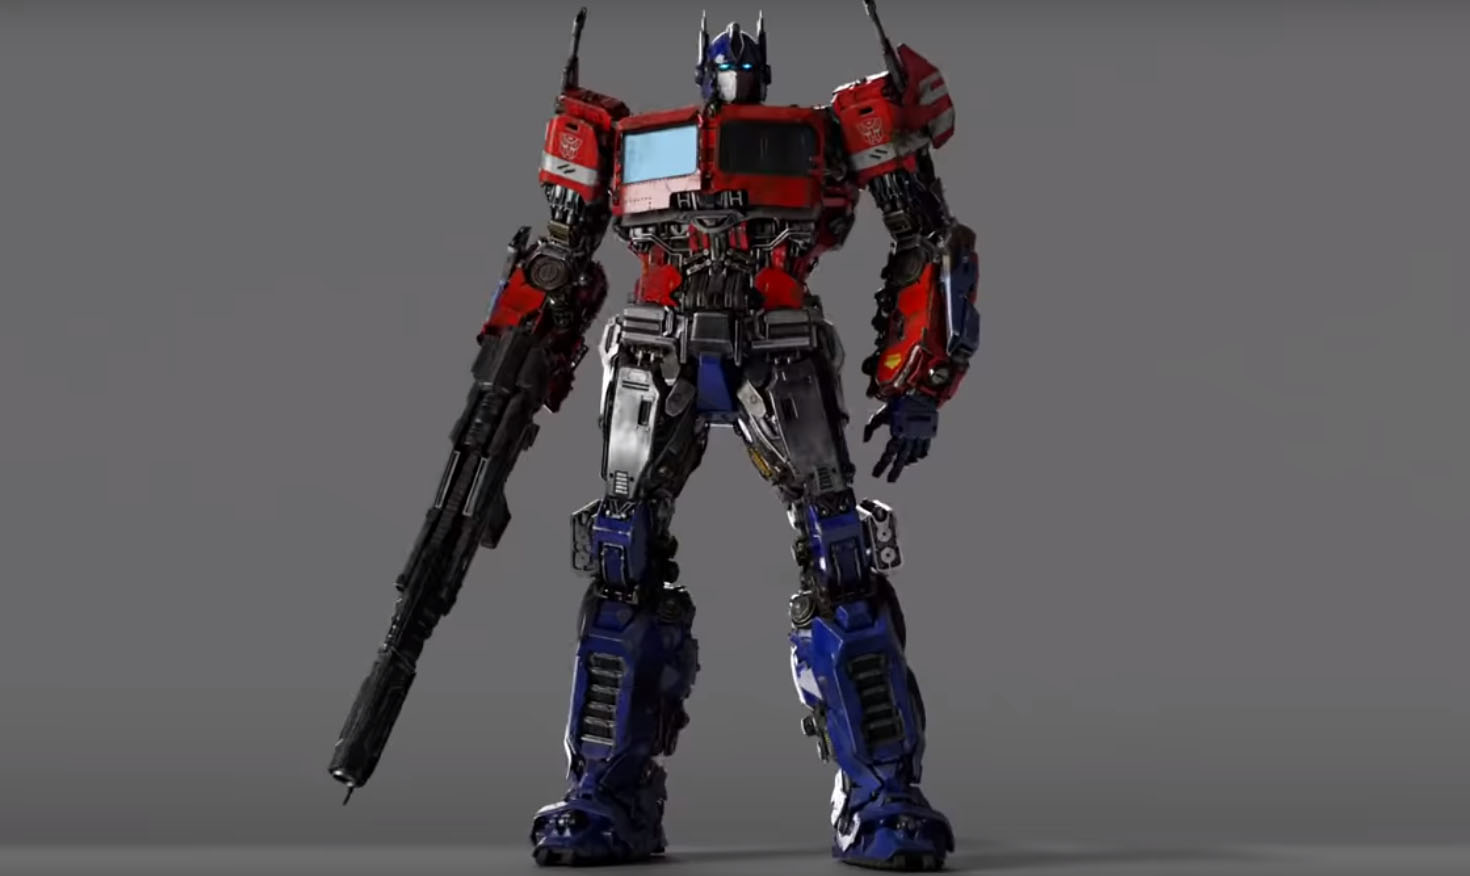 Bumblebee Optimus Prime G1 Design